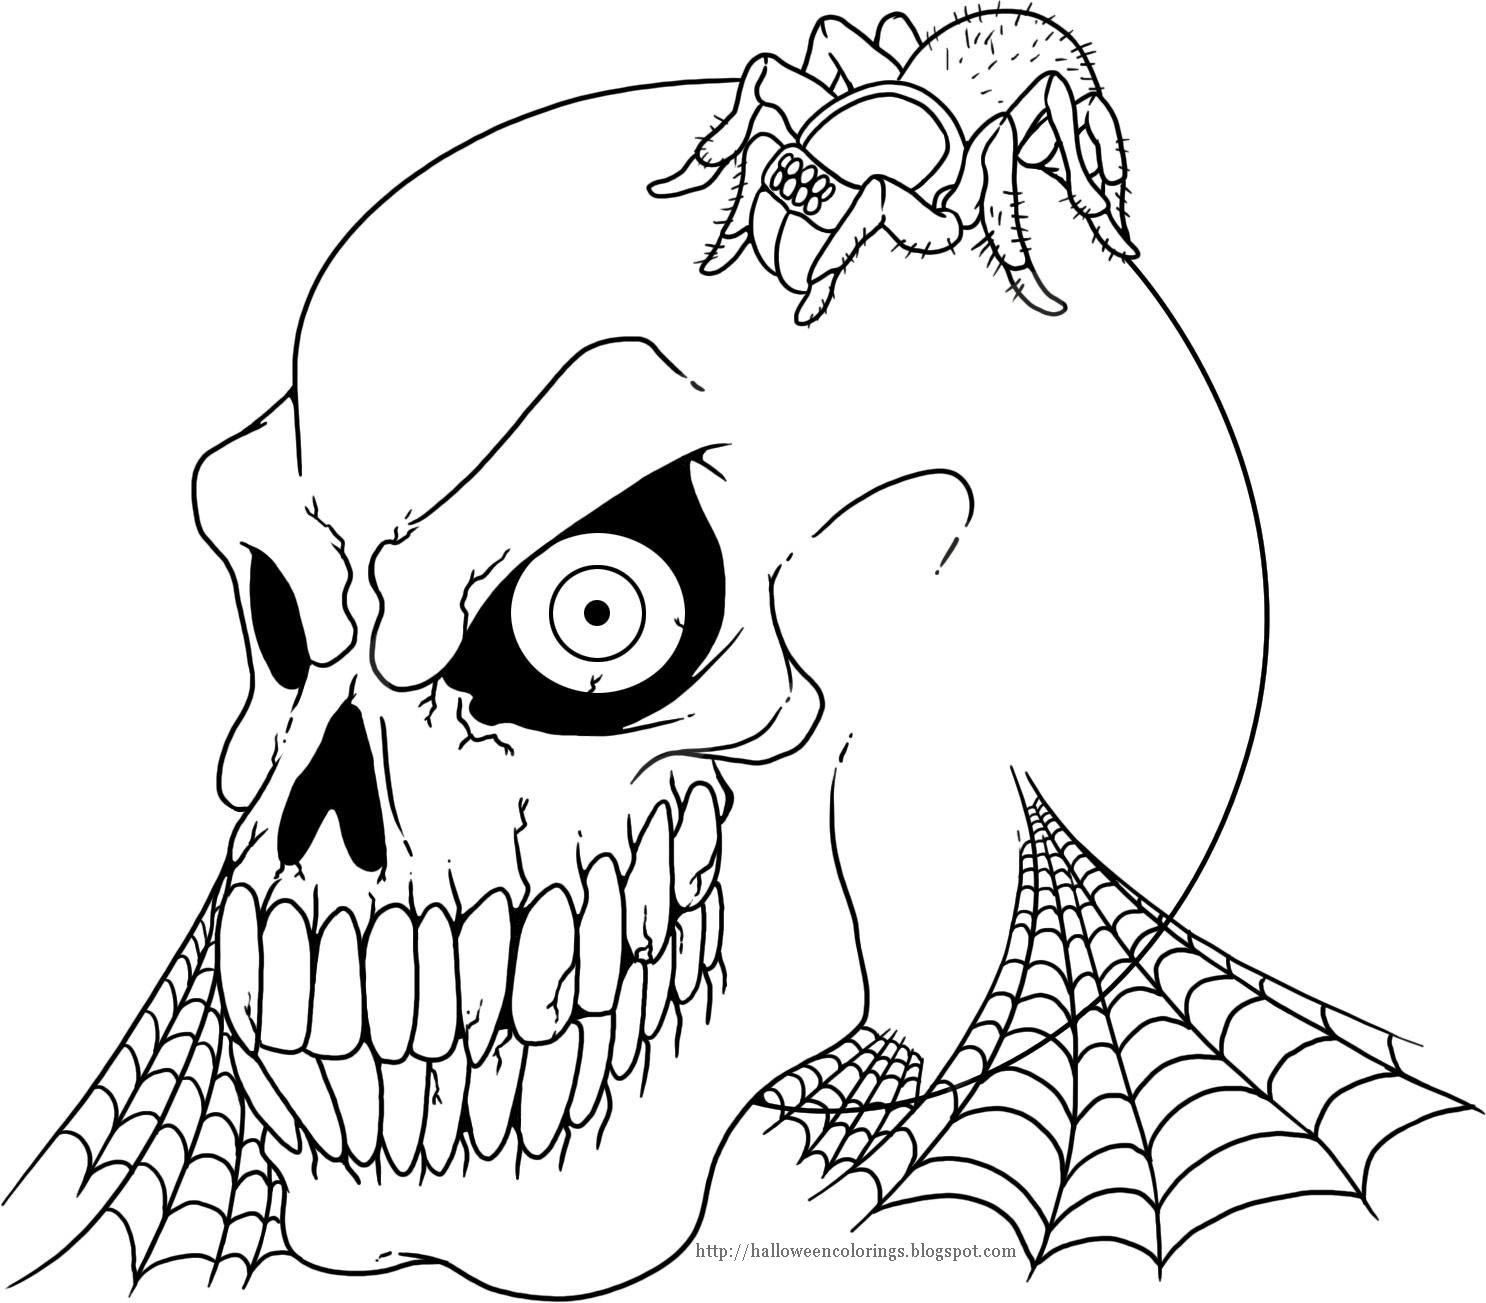 hallloween coloring pages - photo#33